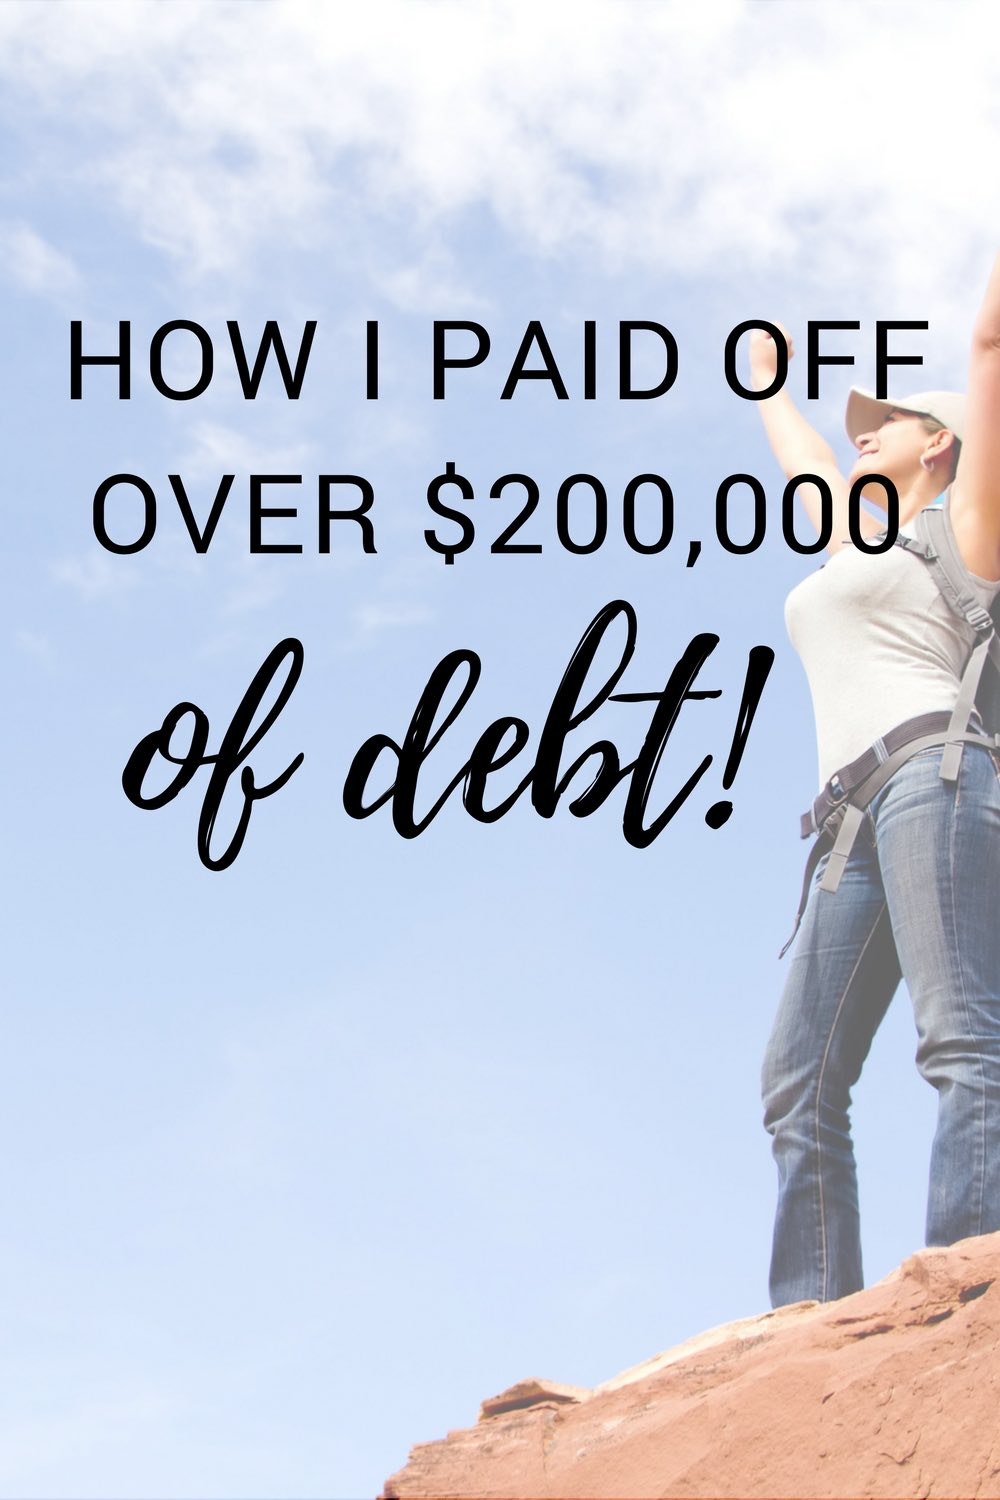 I don't envy this person! $200,000 is crazy money. Thanks for the tip to pay off my debt.